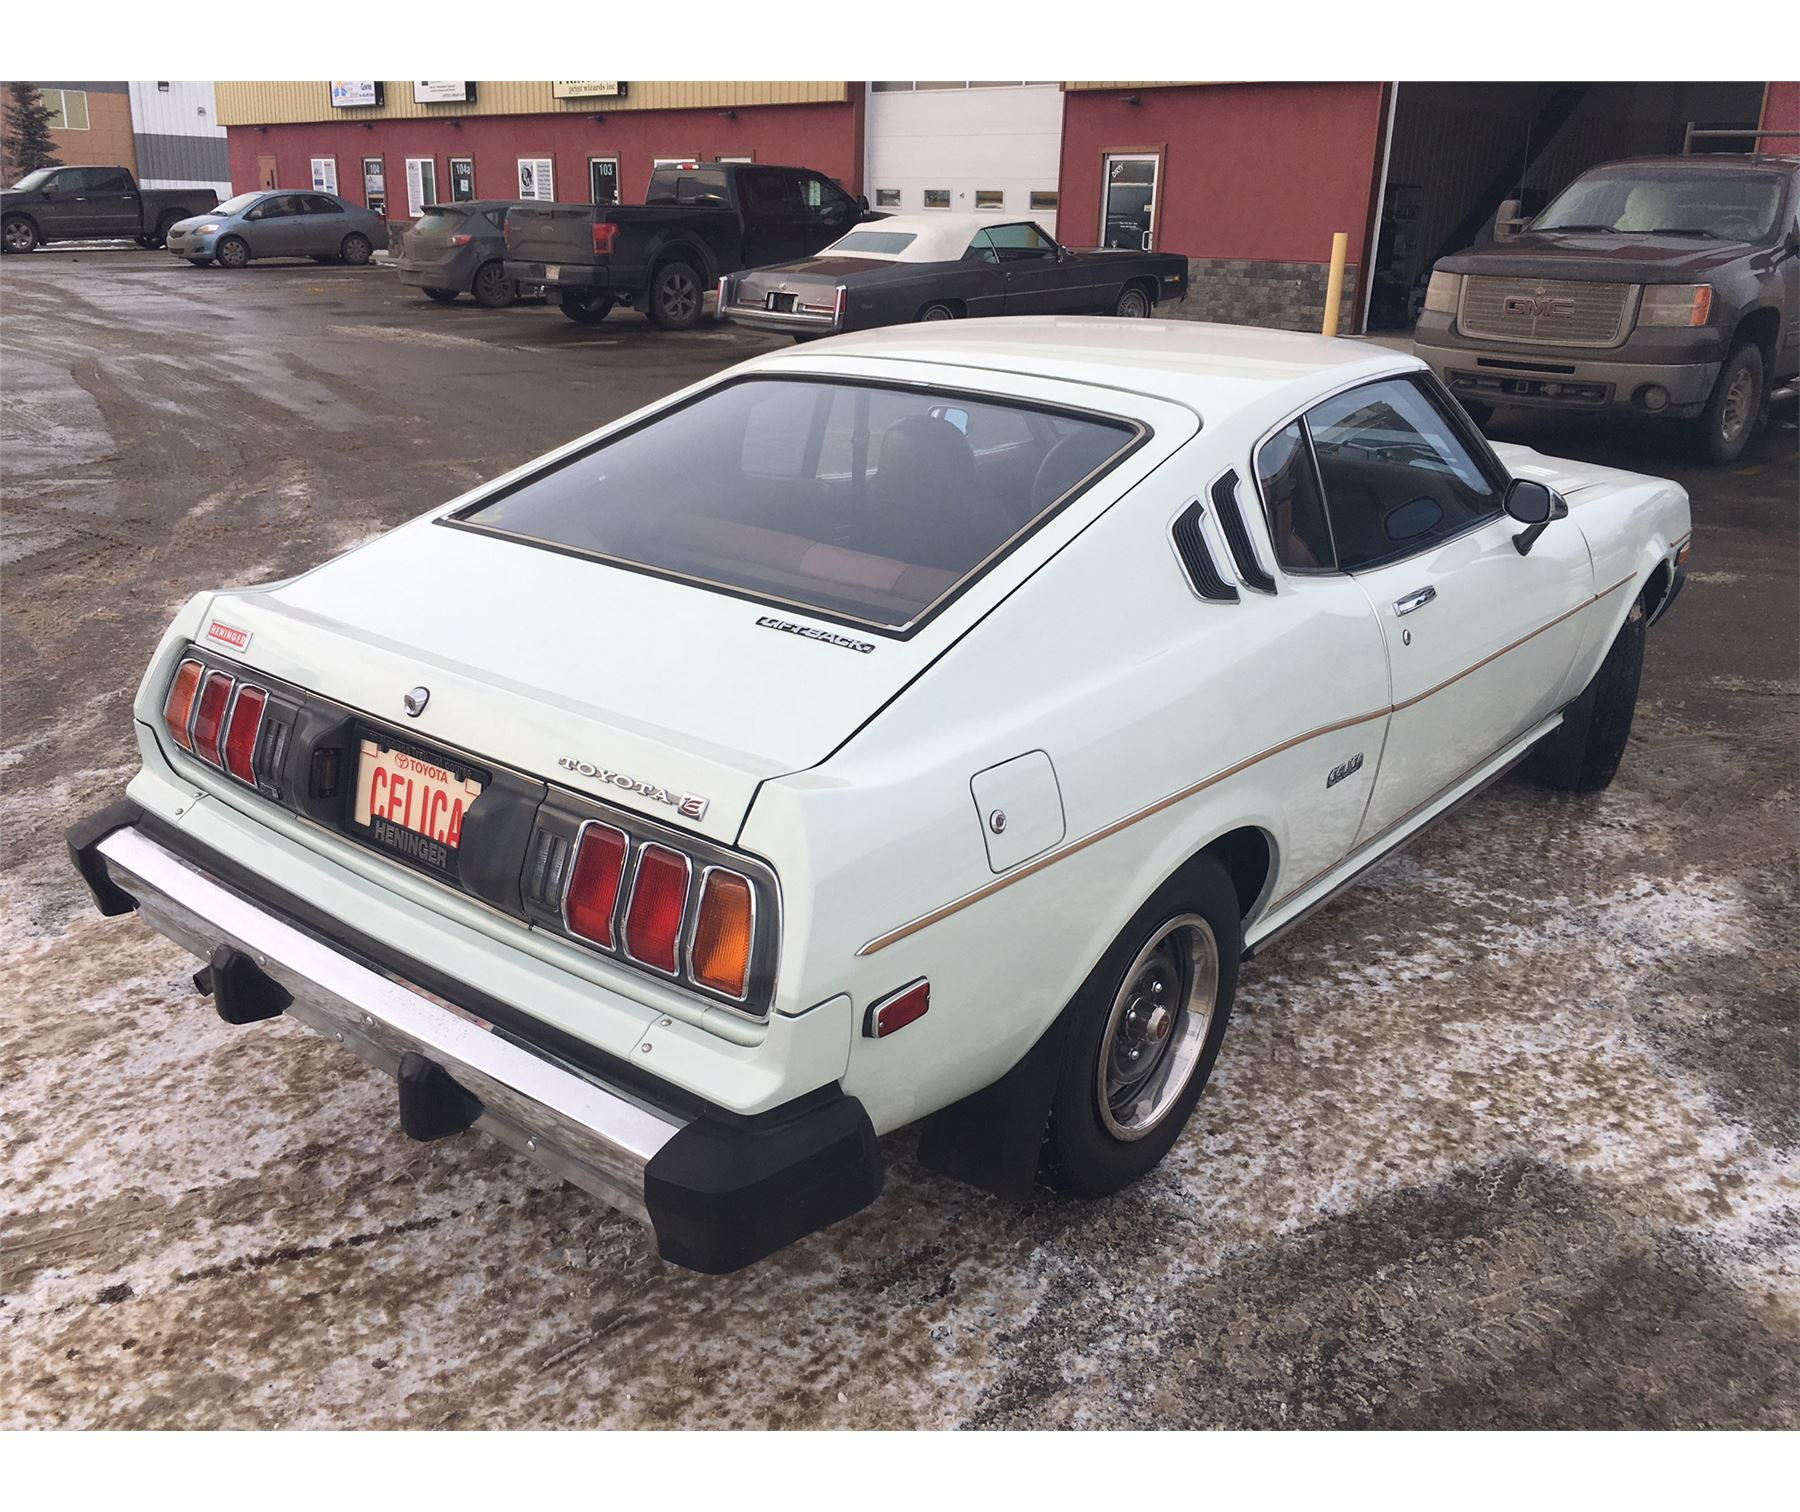 Toyota Celica Coupe 1600 Gt: FRIDAY NIGHT 1977 TOYOTA CELICA GT FASTBACK GT ONLY 30000